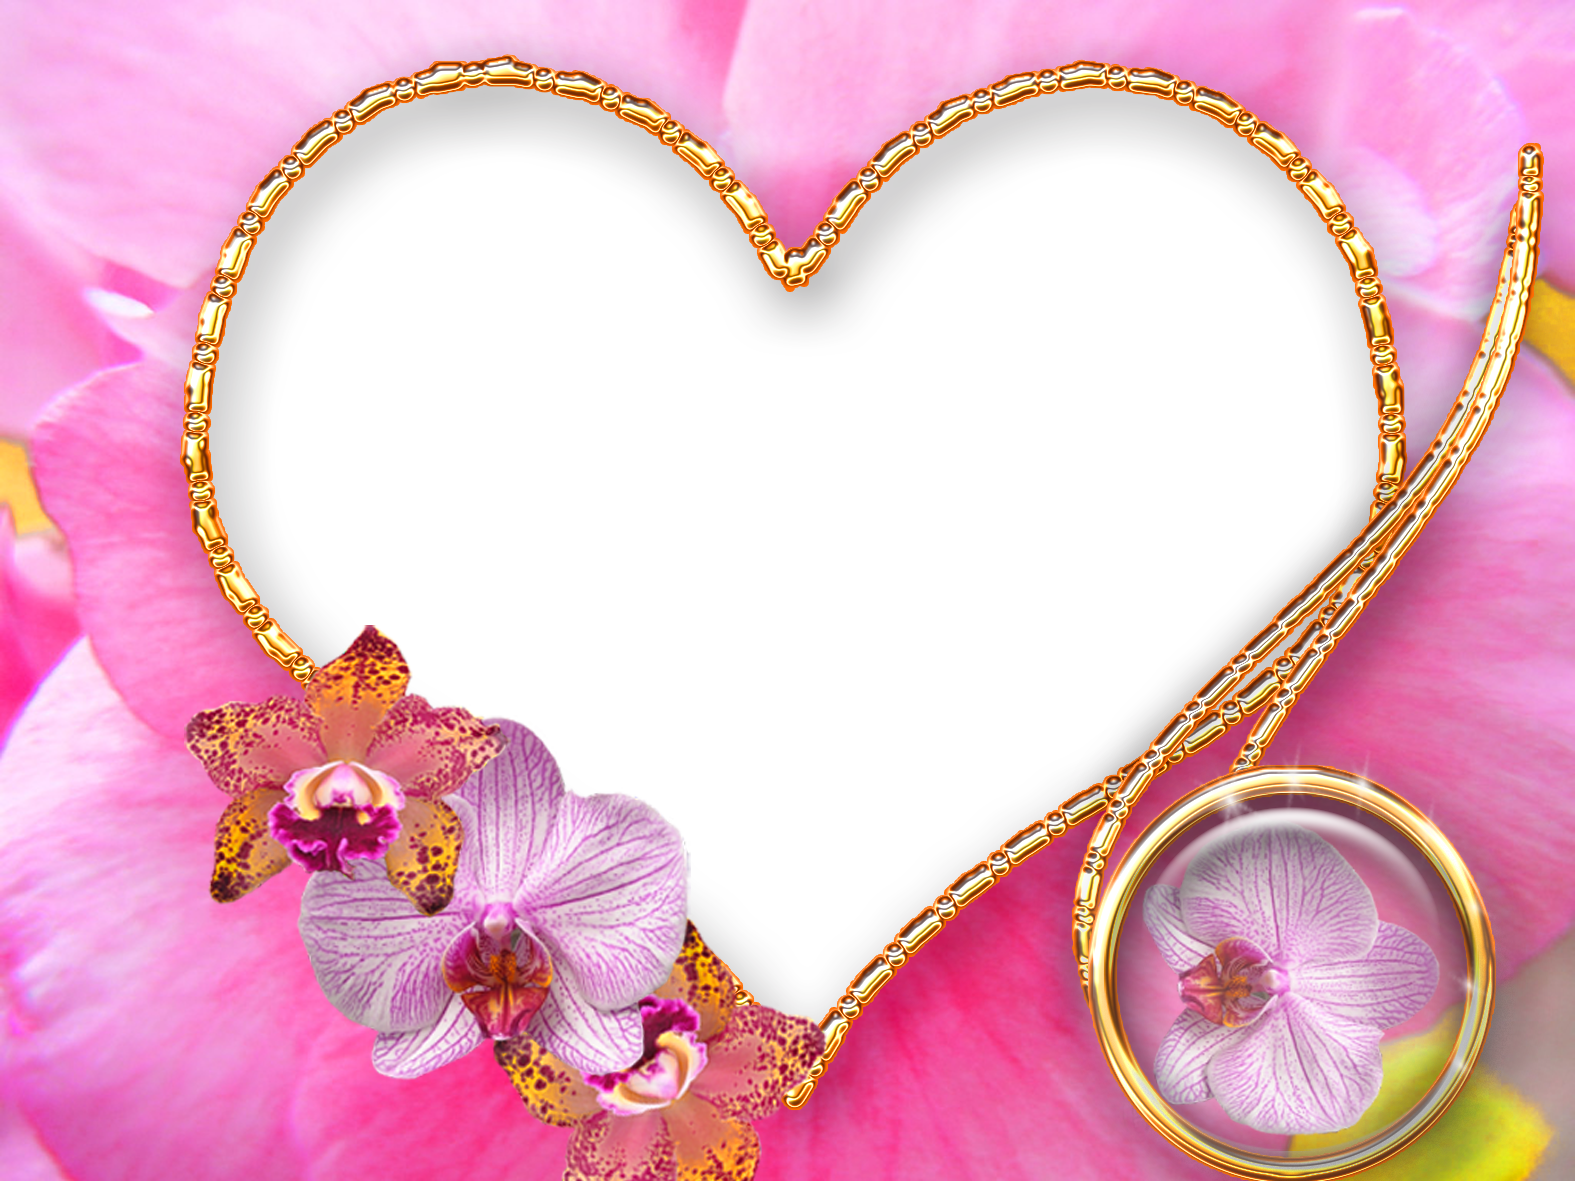 Christian Love Png Hd Transparent Christian Love Hd Png: Marcos Para Fotos Con Corazones